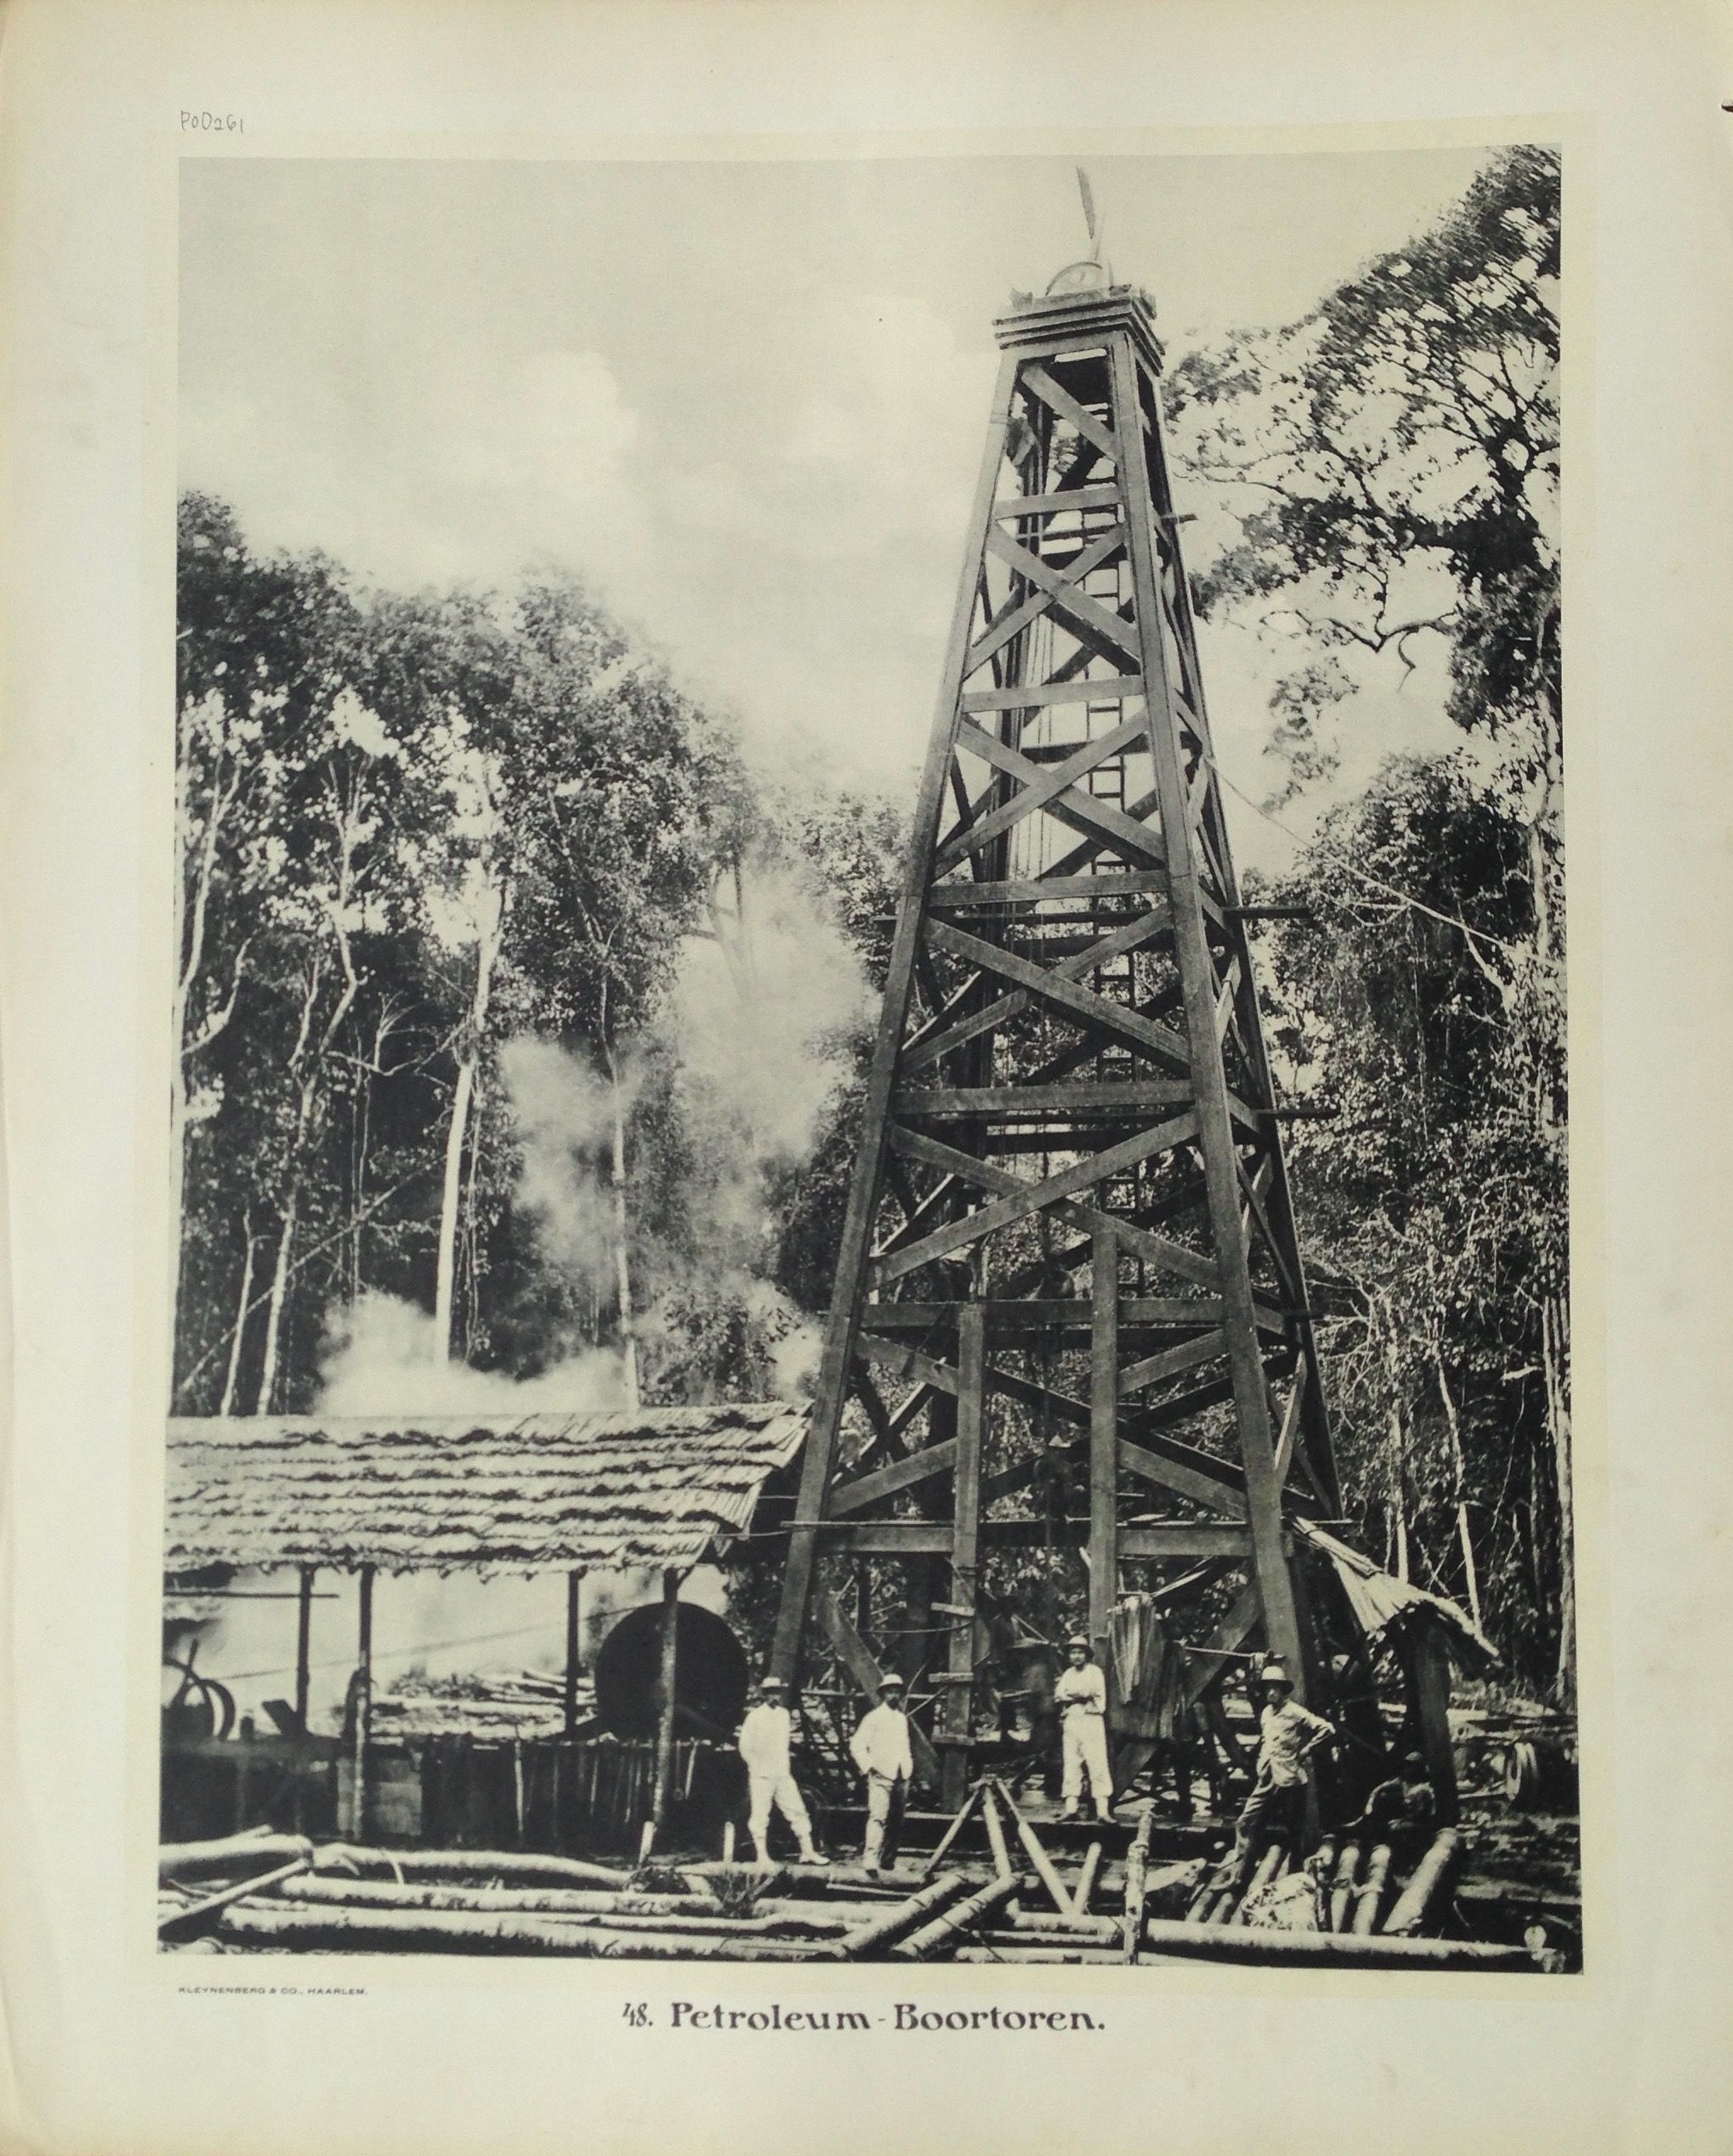 48. Petroleum – Boortoren. Antique school board of an Oil Drilling Rig, Borneo. Taken c.1895 and published between 1912 and 1914 in Holland. Oil was discovered in Indonesia in 1863 but commercial production did not begin...